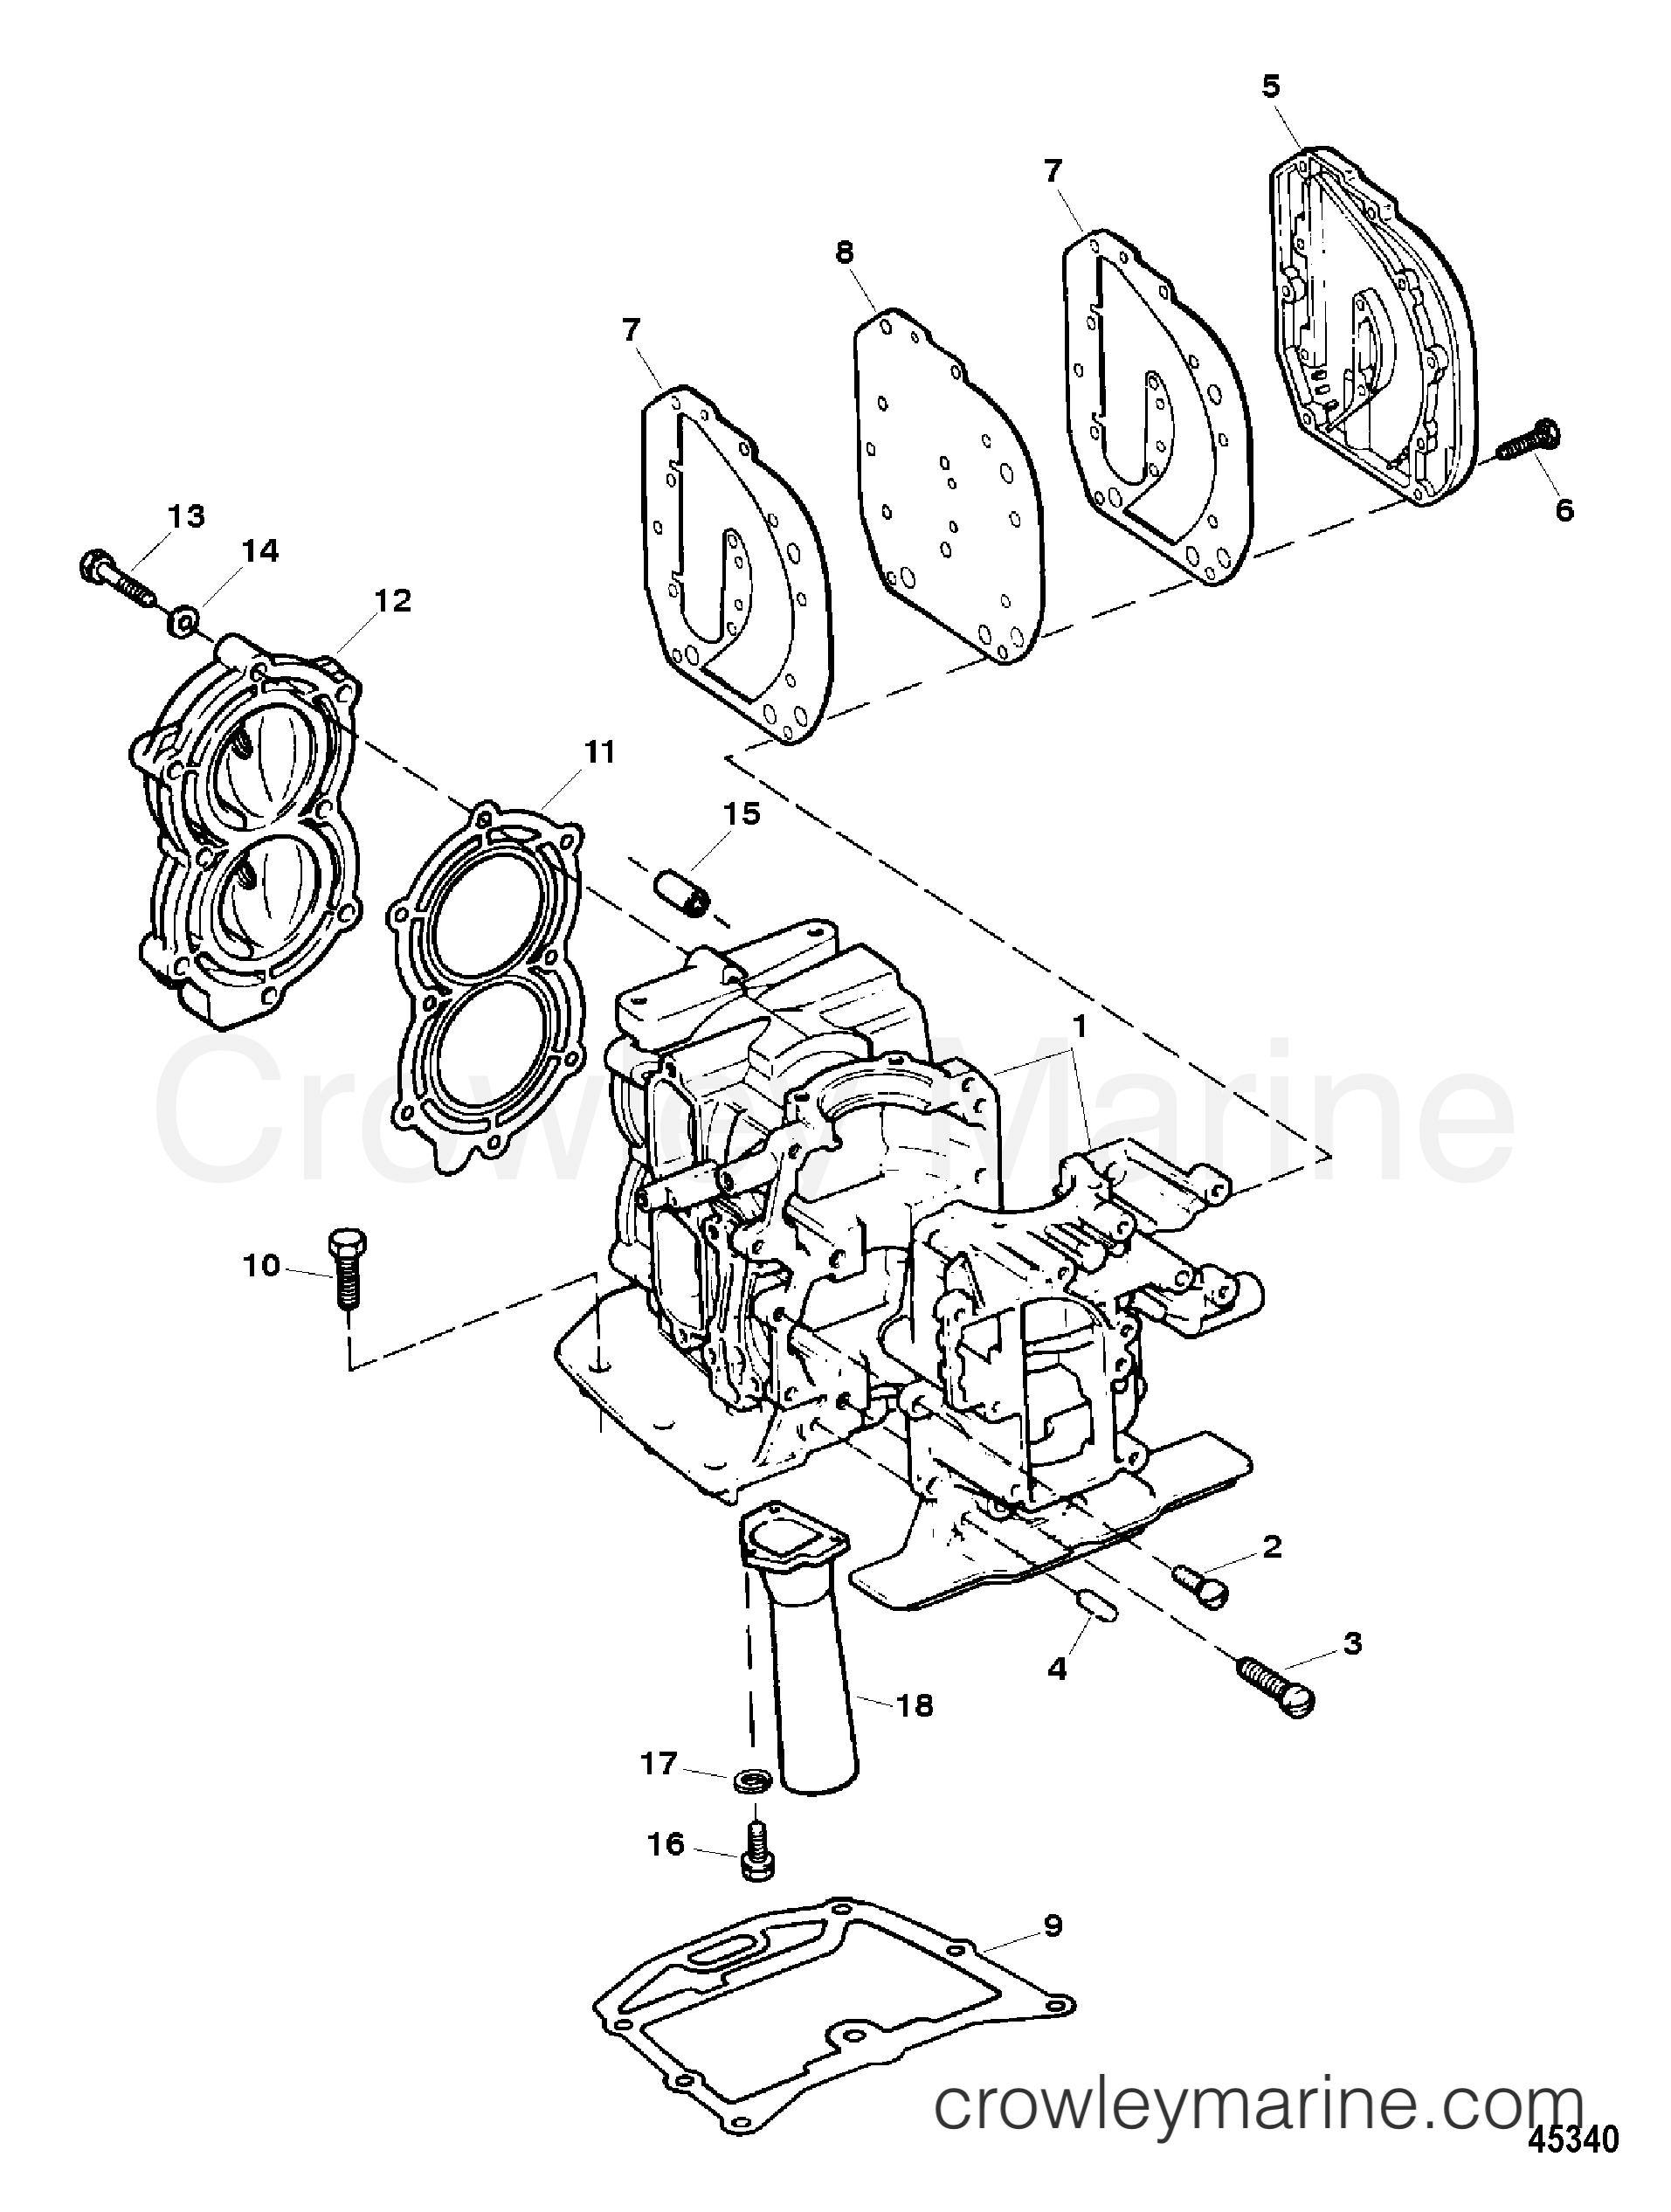 cylinder block assembly 1996 force outboard 9 9 h009201sd mh Boat Motor Diagram 1996 force outboard 9 9 h009201sd mh cylinder block assembly section